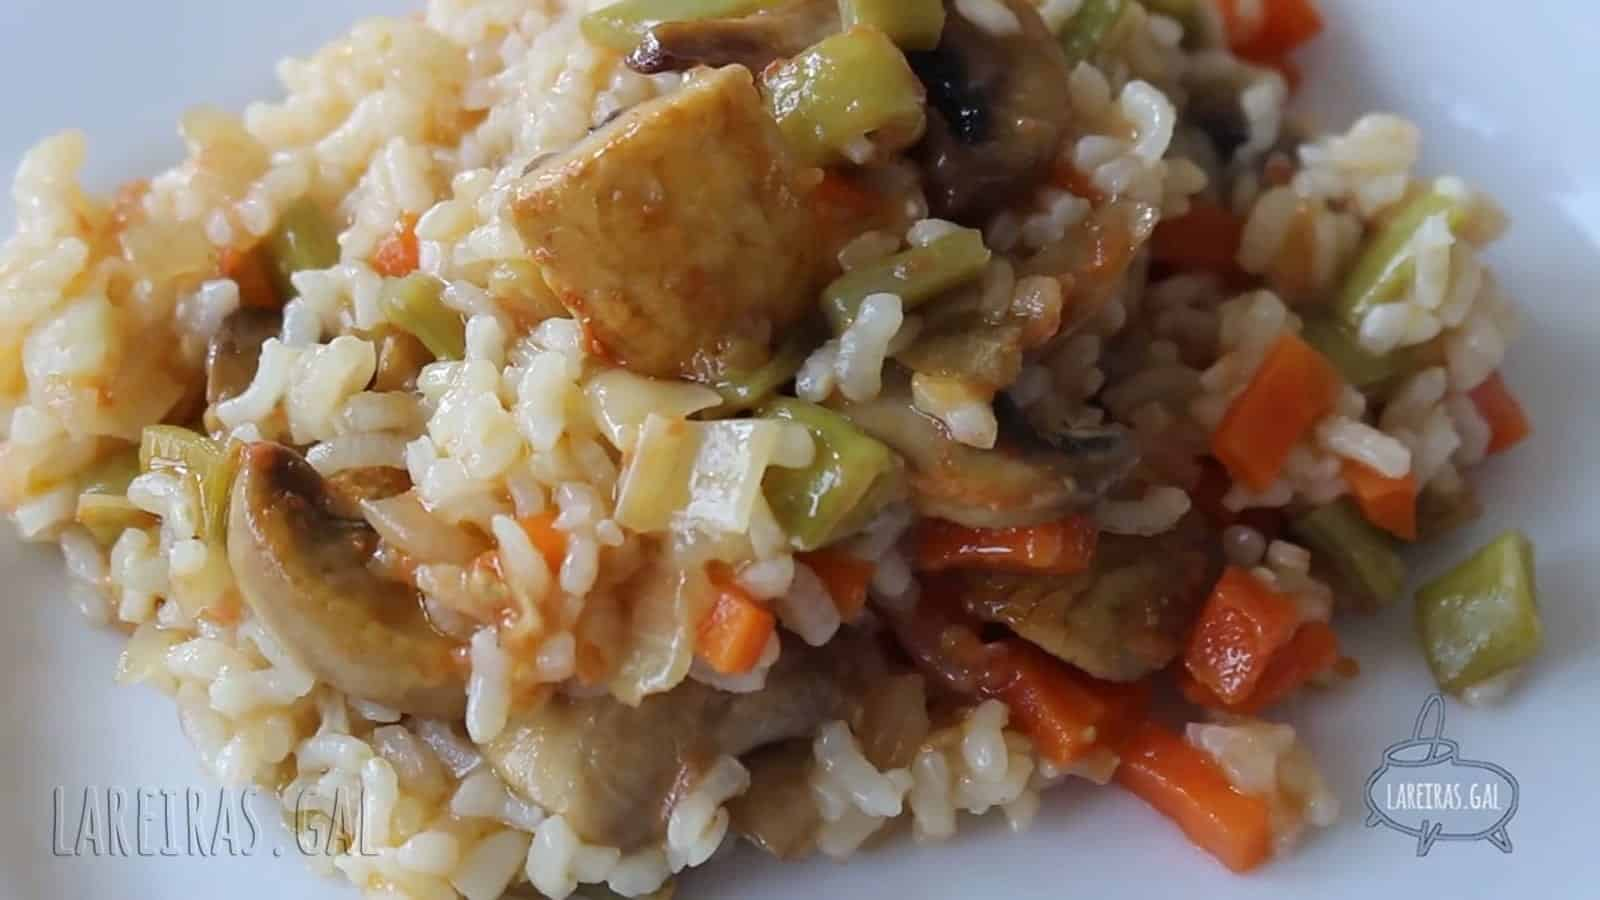 Arroz con verduras al curry